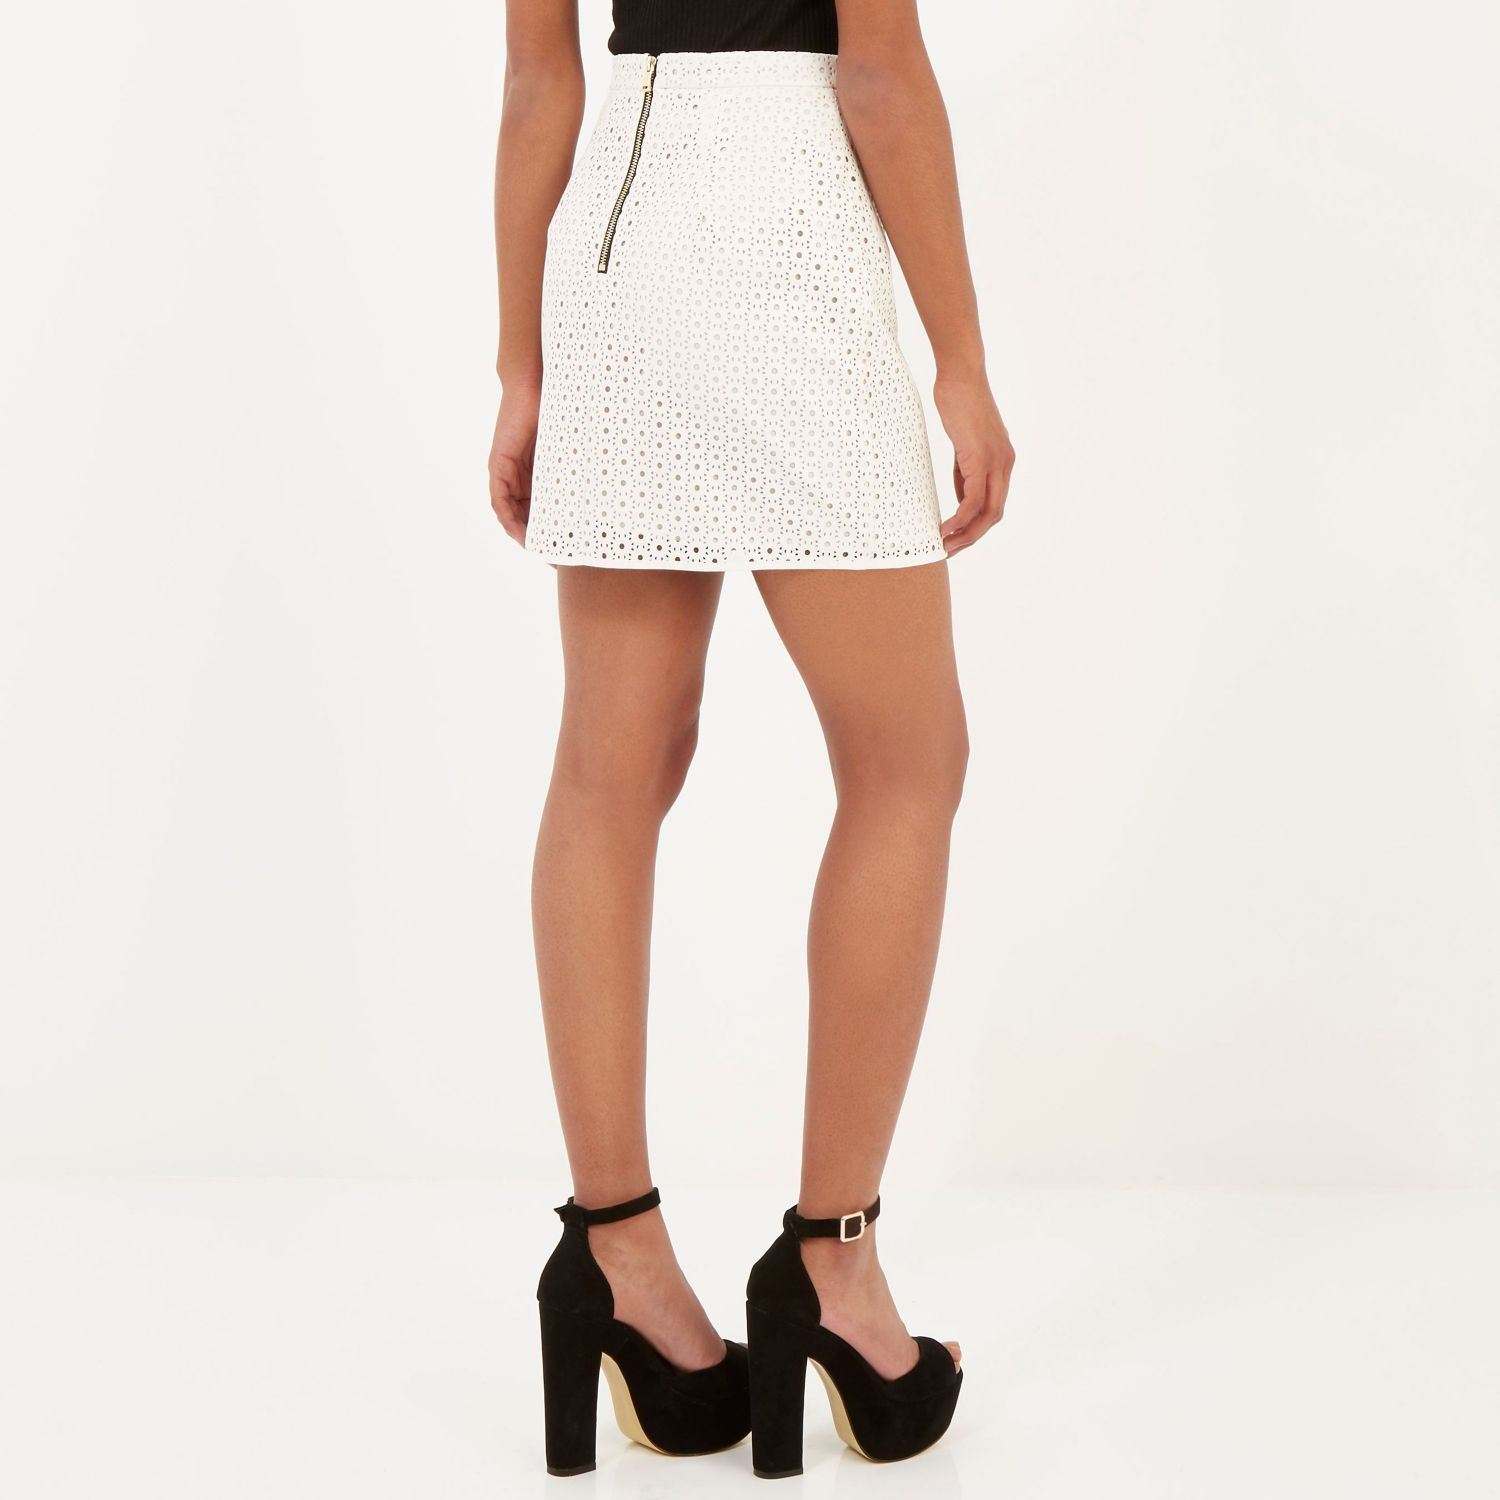 River island White Leather-look Laser Cut Mini Skirt in White | Lyst